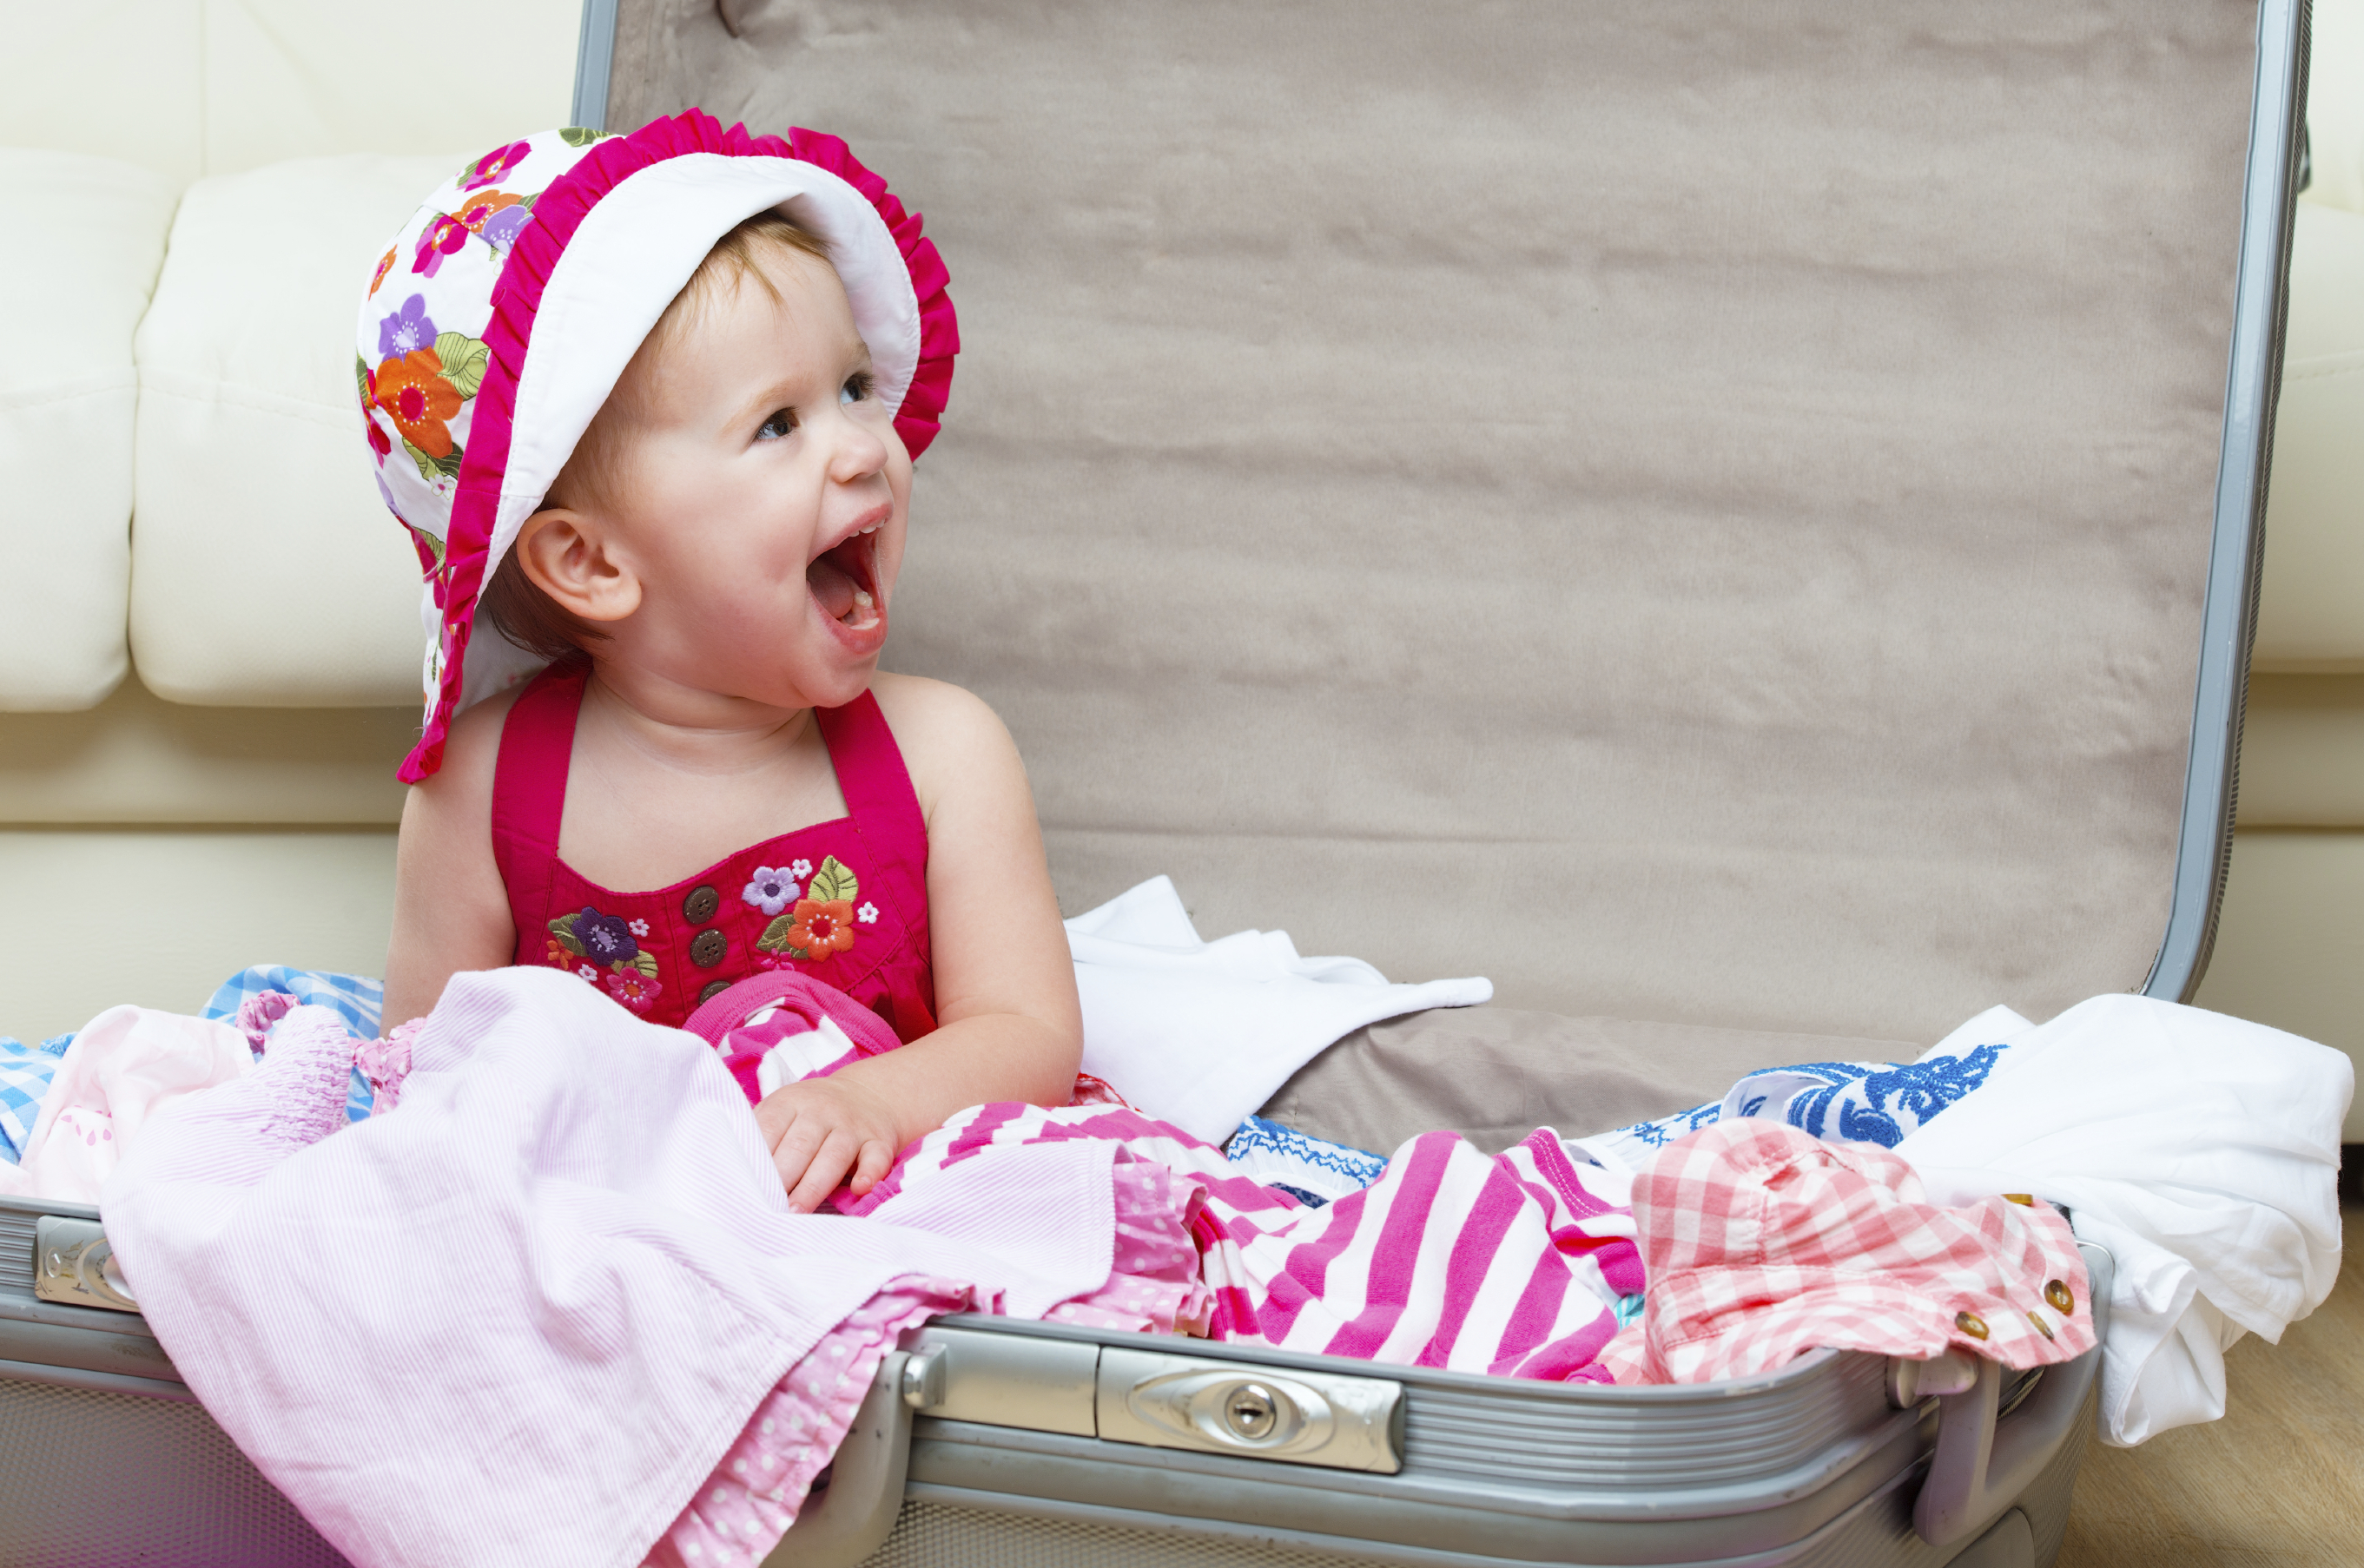 Preparation is everything for holidays with toddlers